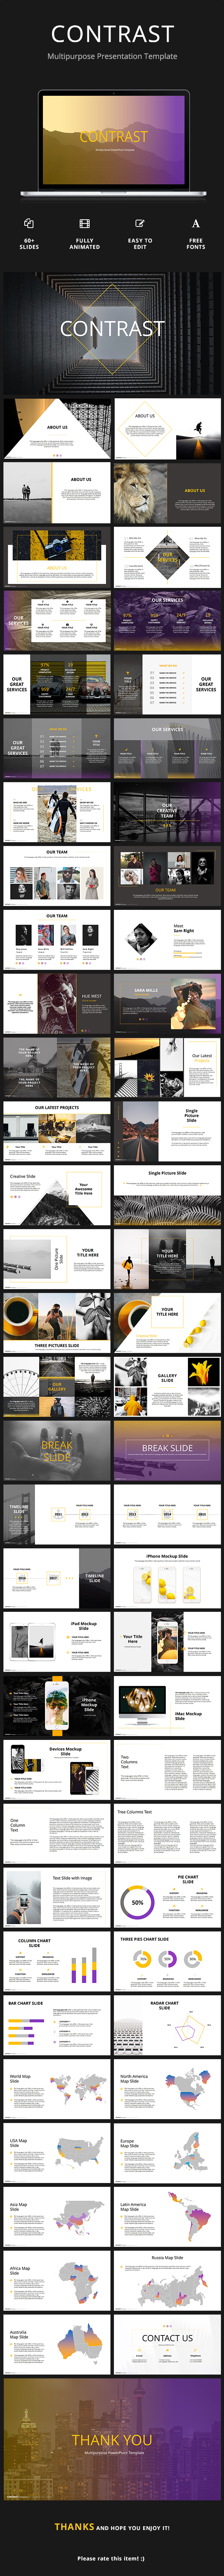 GraphicRiver Contrast Creative Google Slides Template 21110813